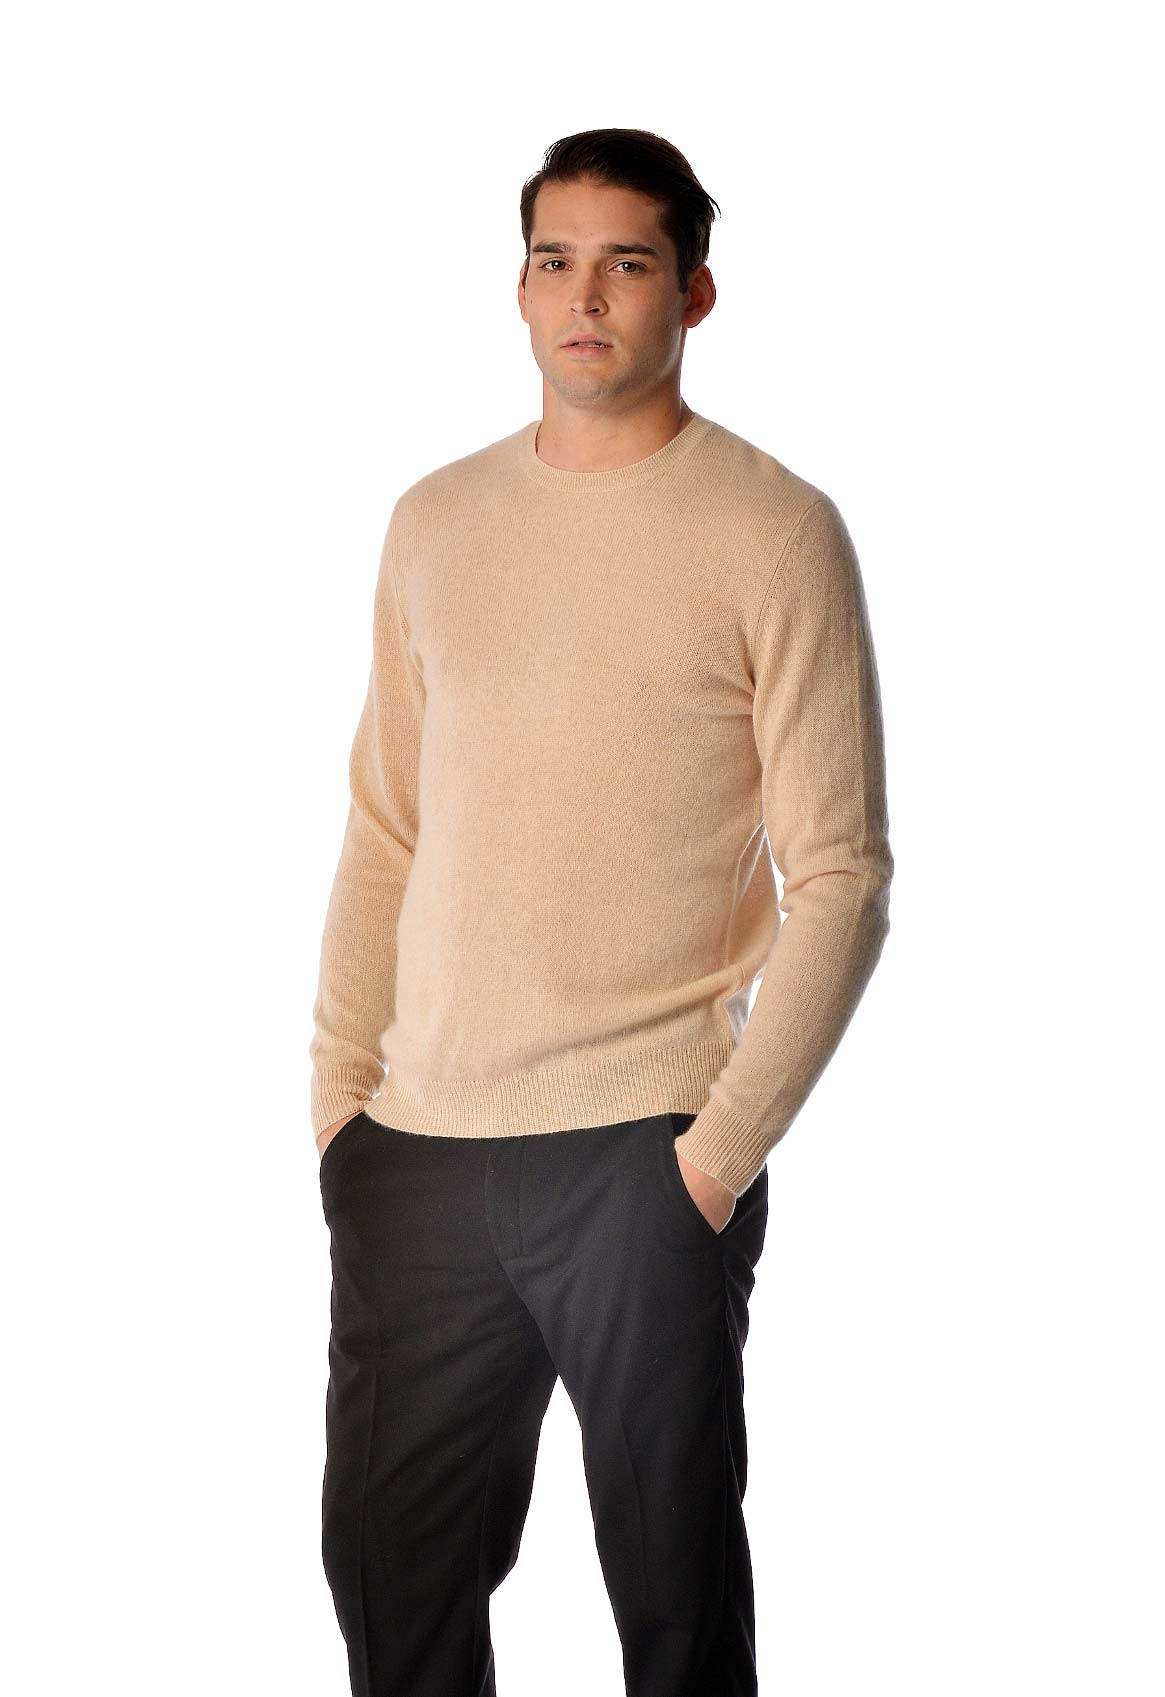 Spring Sweater for Men - Pure Cashmere Crew Neck